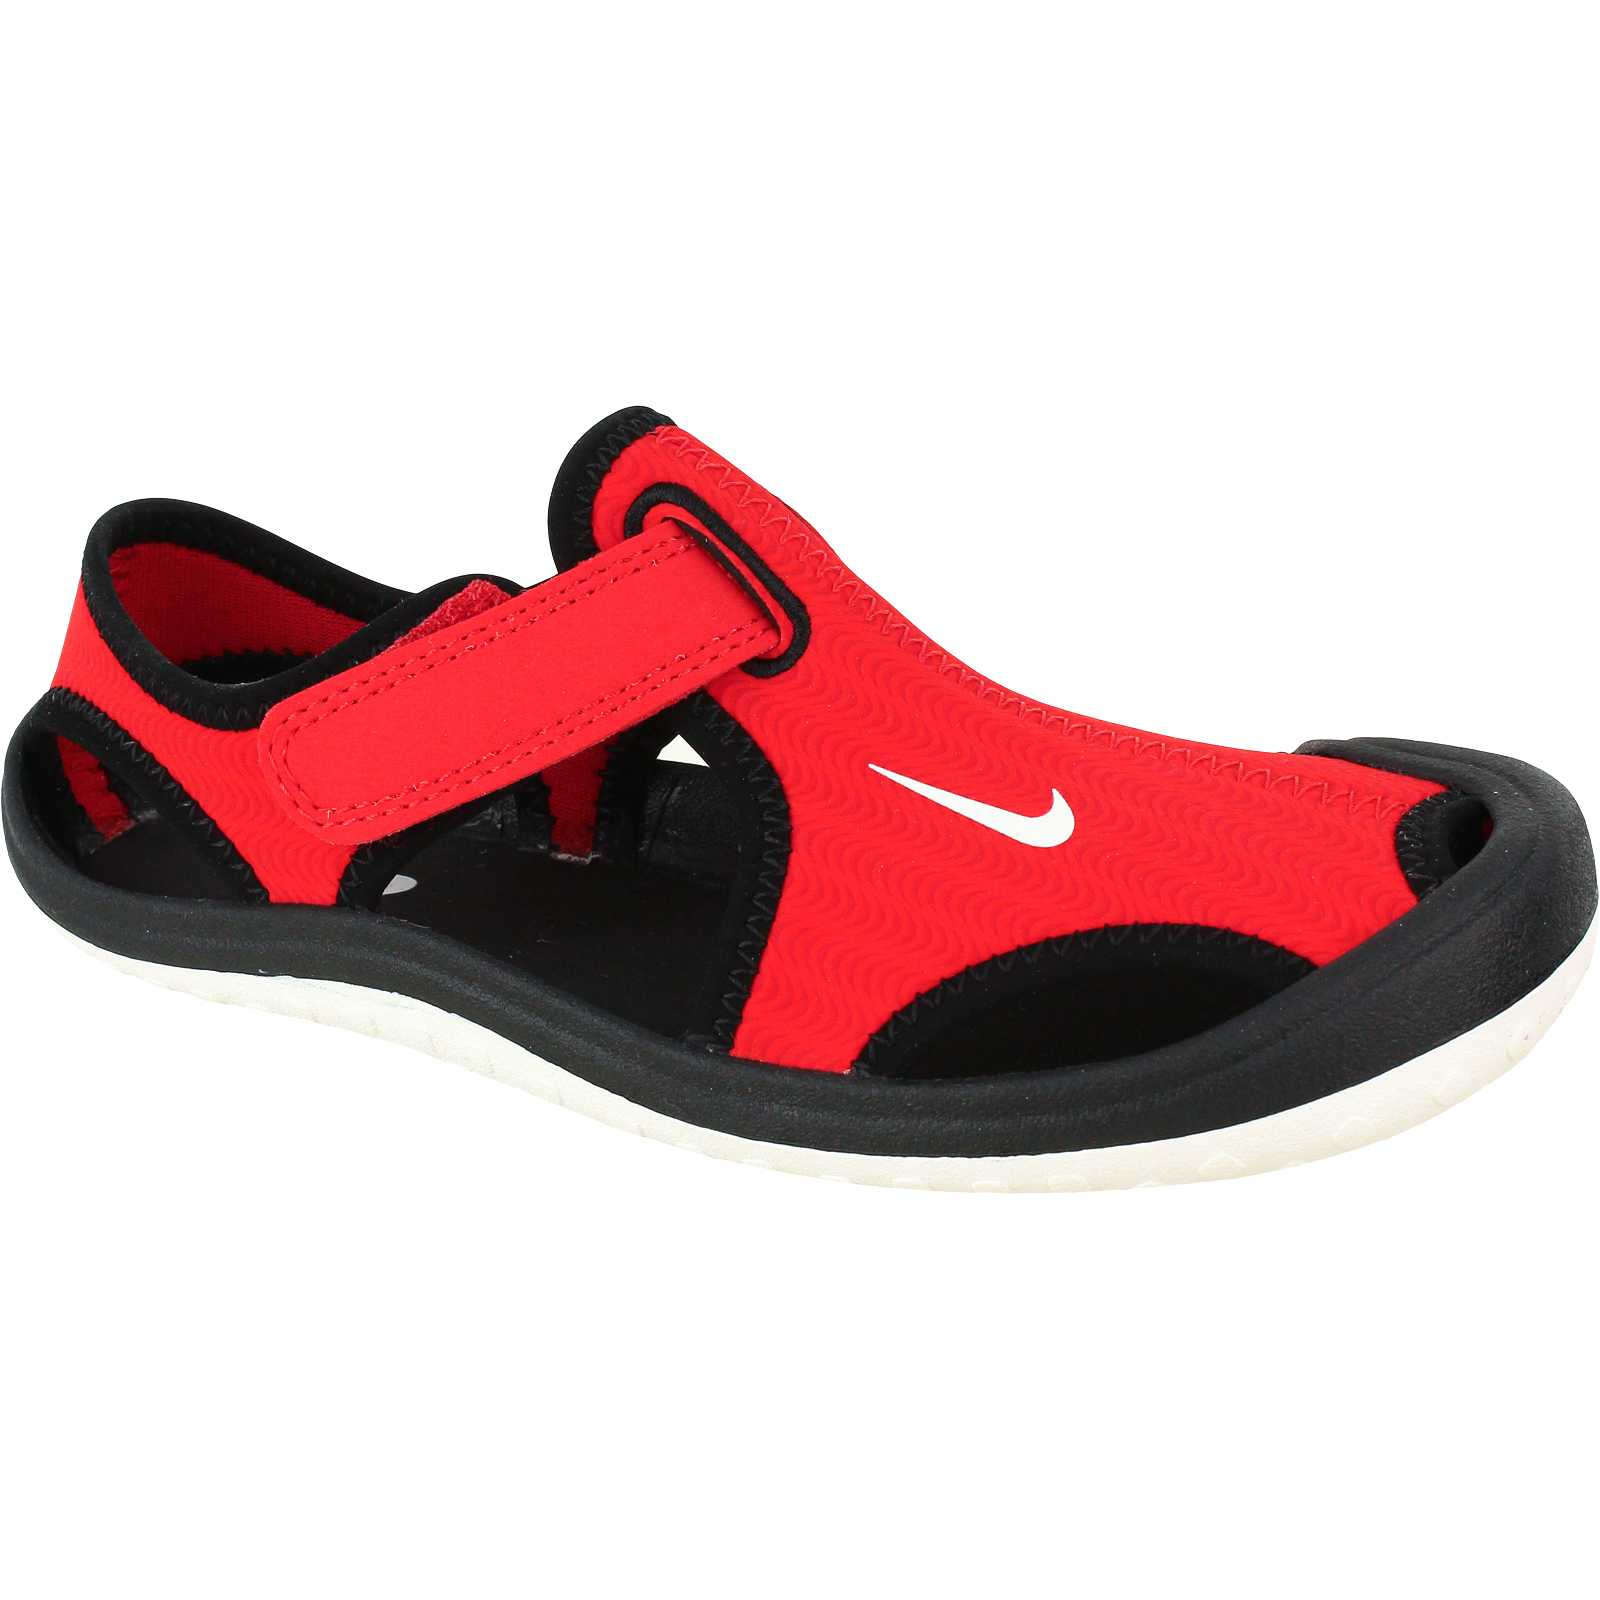 602 Sunray 344925 Sandale Nike Protect Copii ynwvNmO08